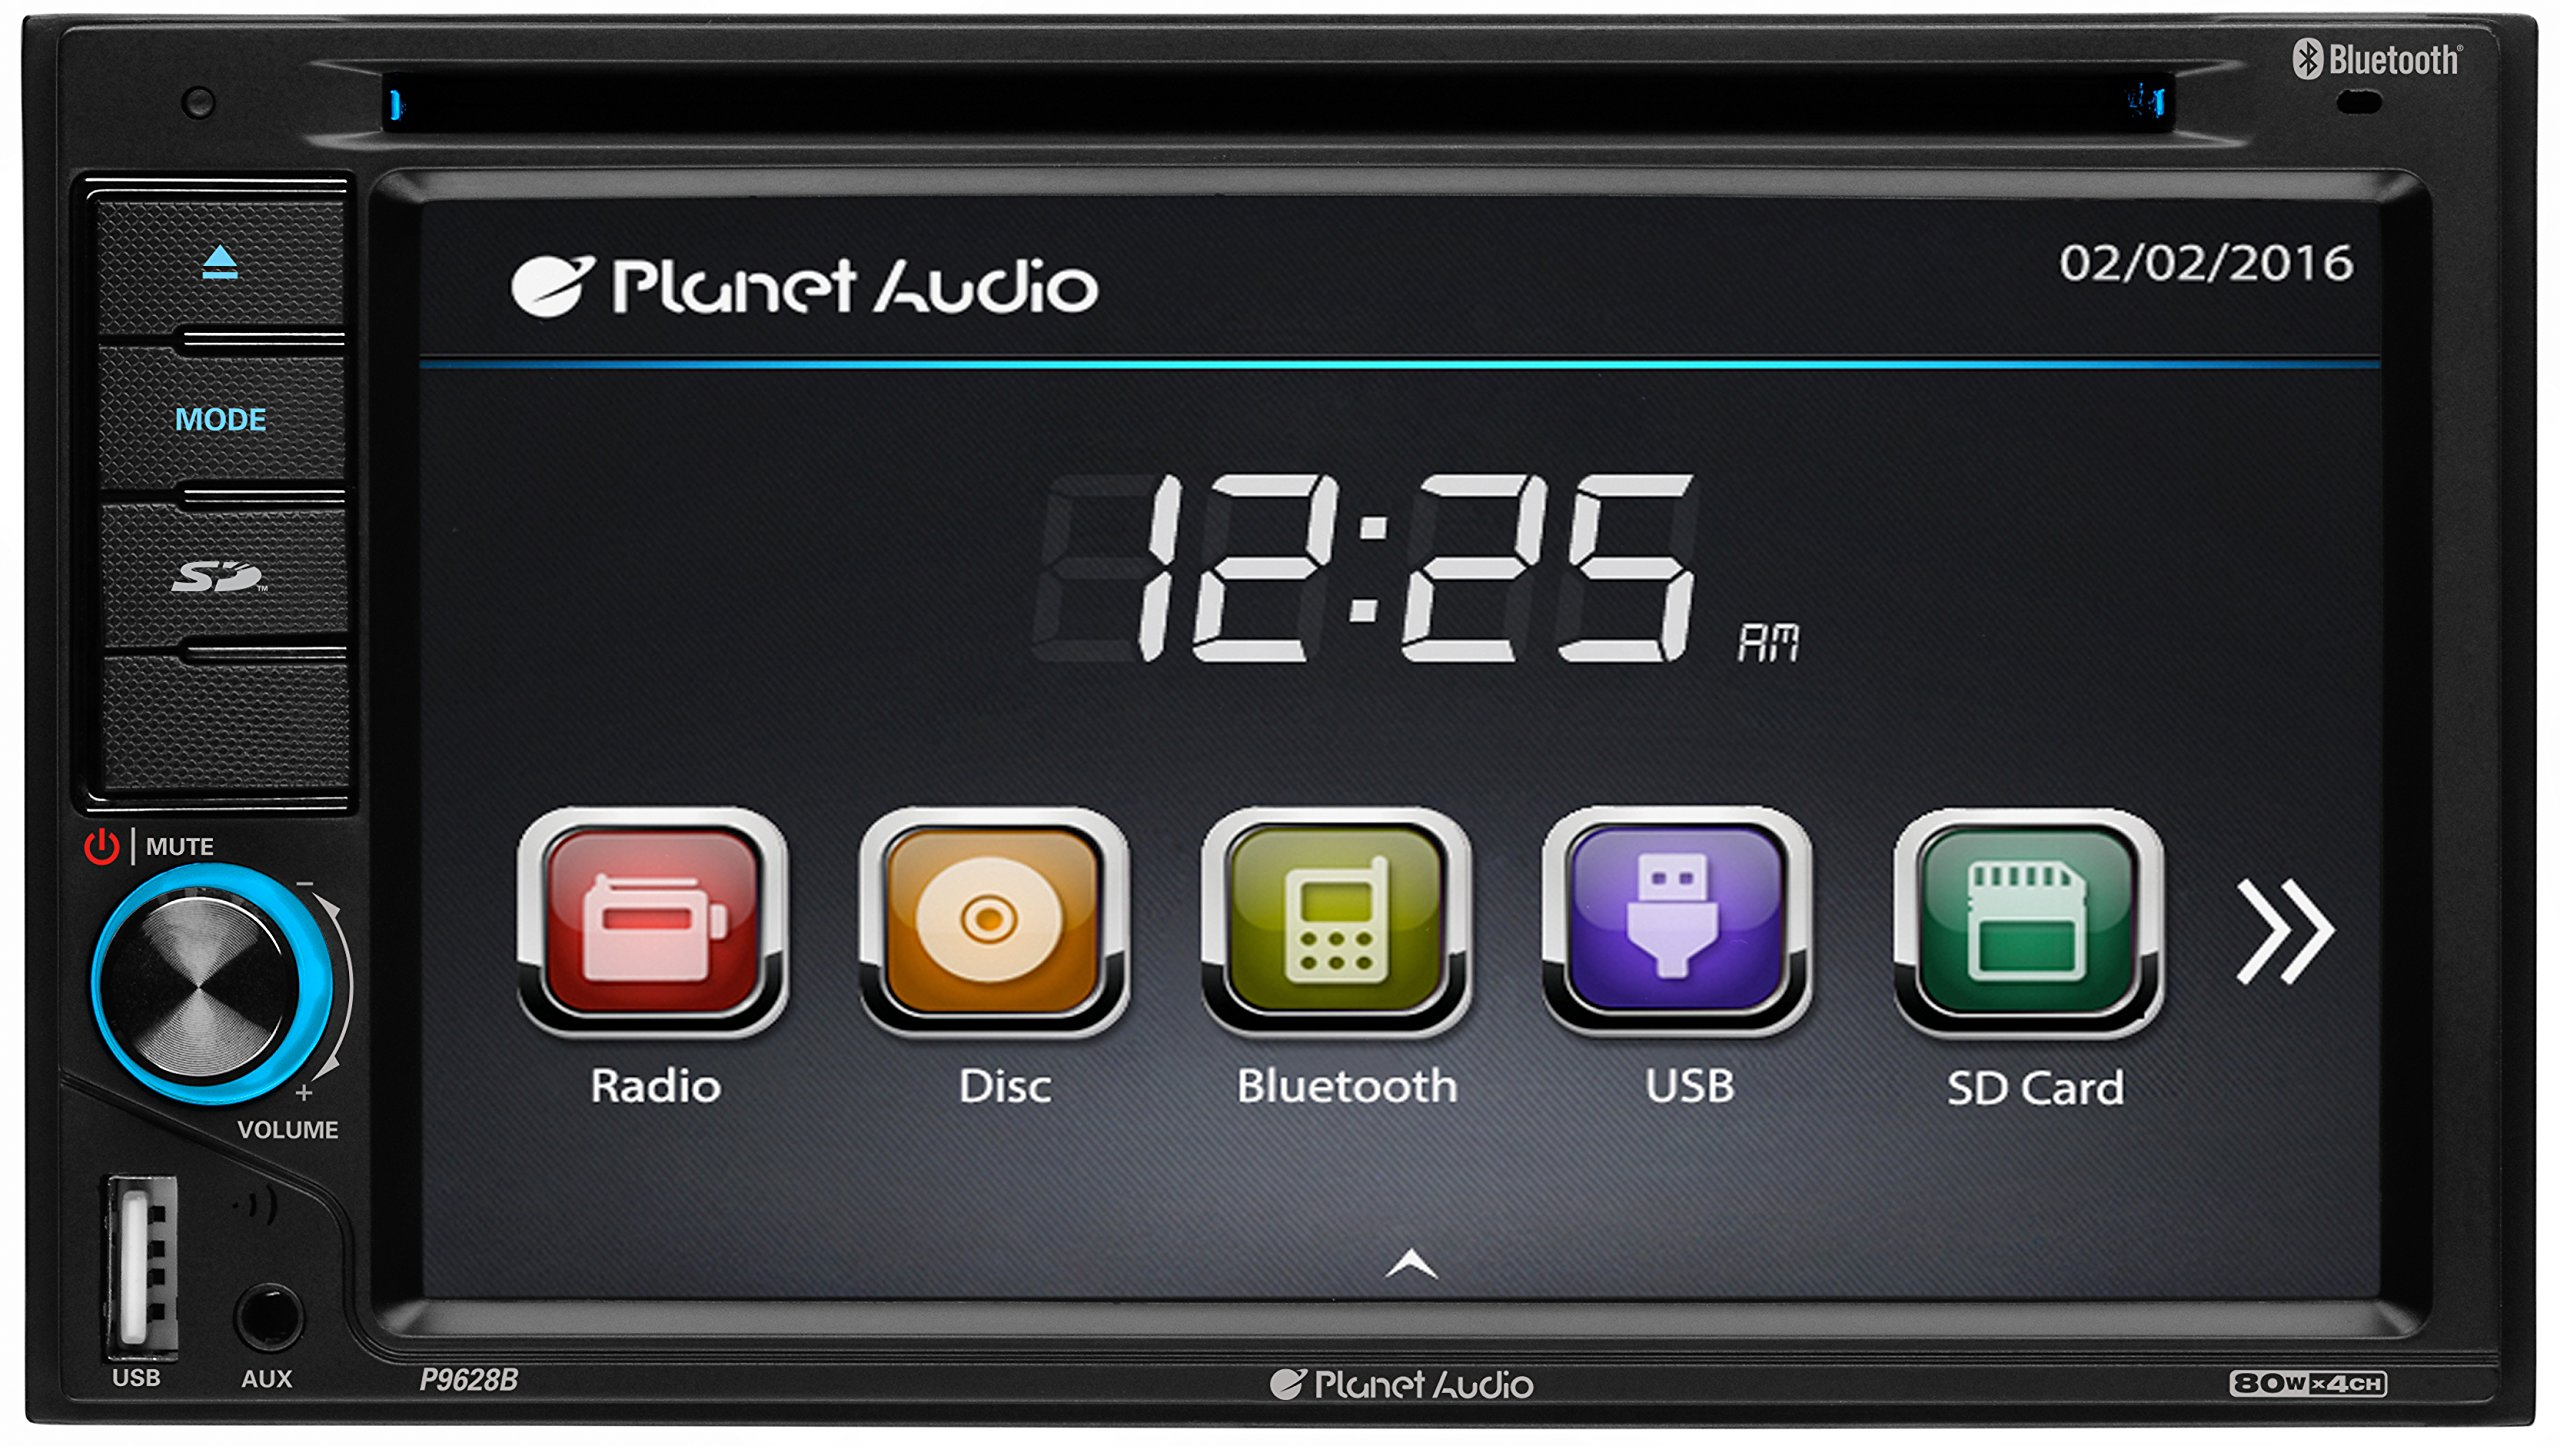 Planet Audio P9628B Double Din, Touchscreen, Bluetooth, DVD/CD/MP3/USB/SD AM/FM Car Stereo, 6.2 inch Digital LCD Monitor, Wireless Remote